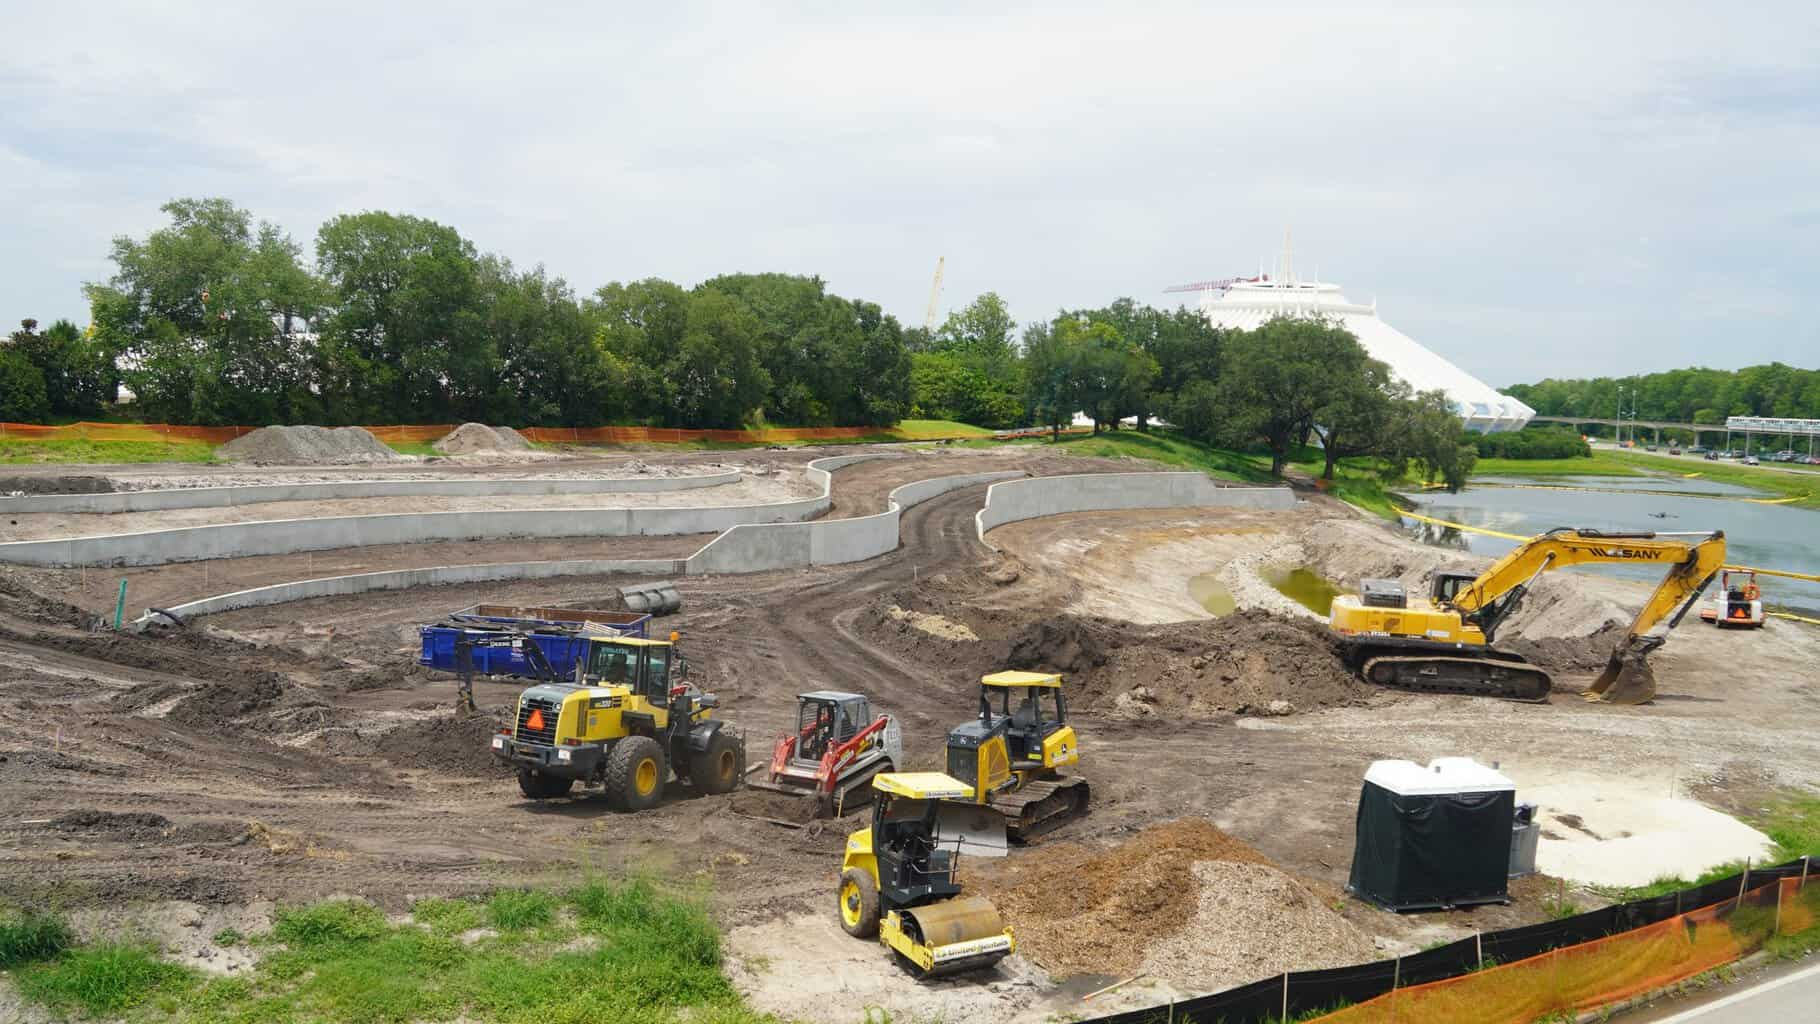 TRON Roller Coaster Construction Update June 2019 work on the Magic Kingdom berm